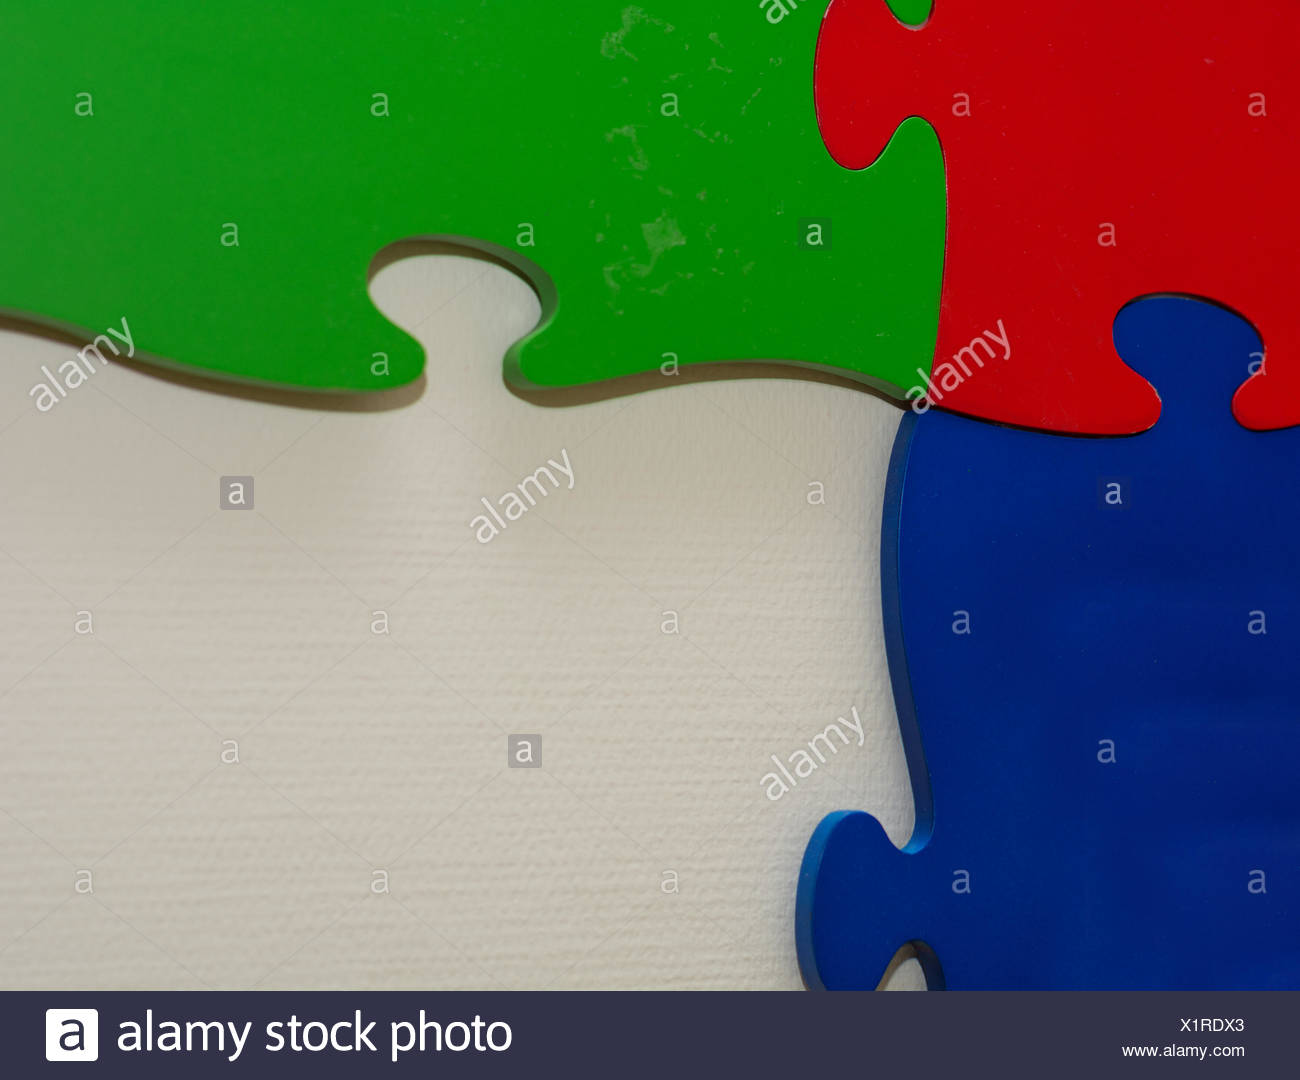 three giant puzzle pieces with intense colors - Stock Image